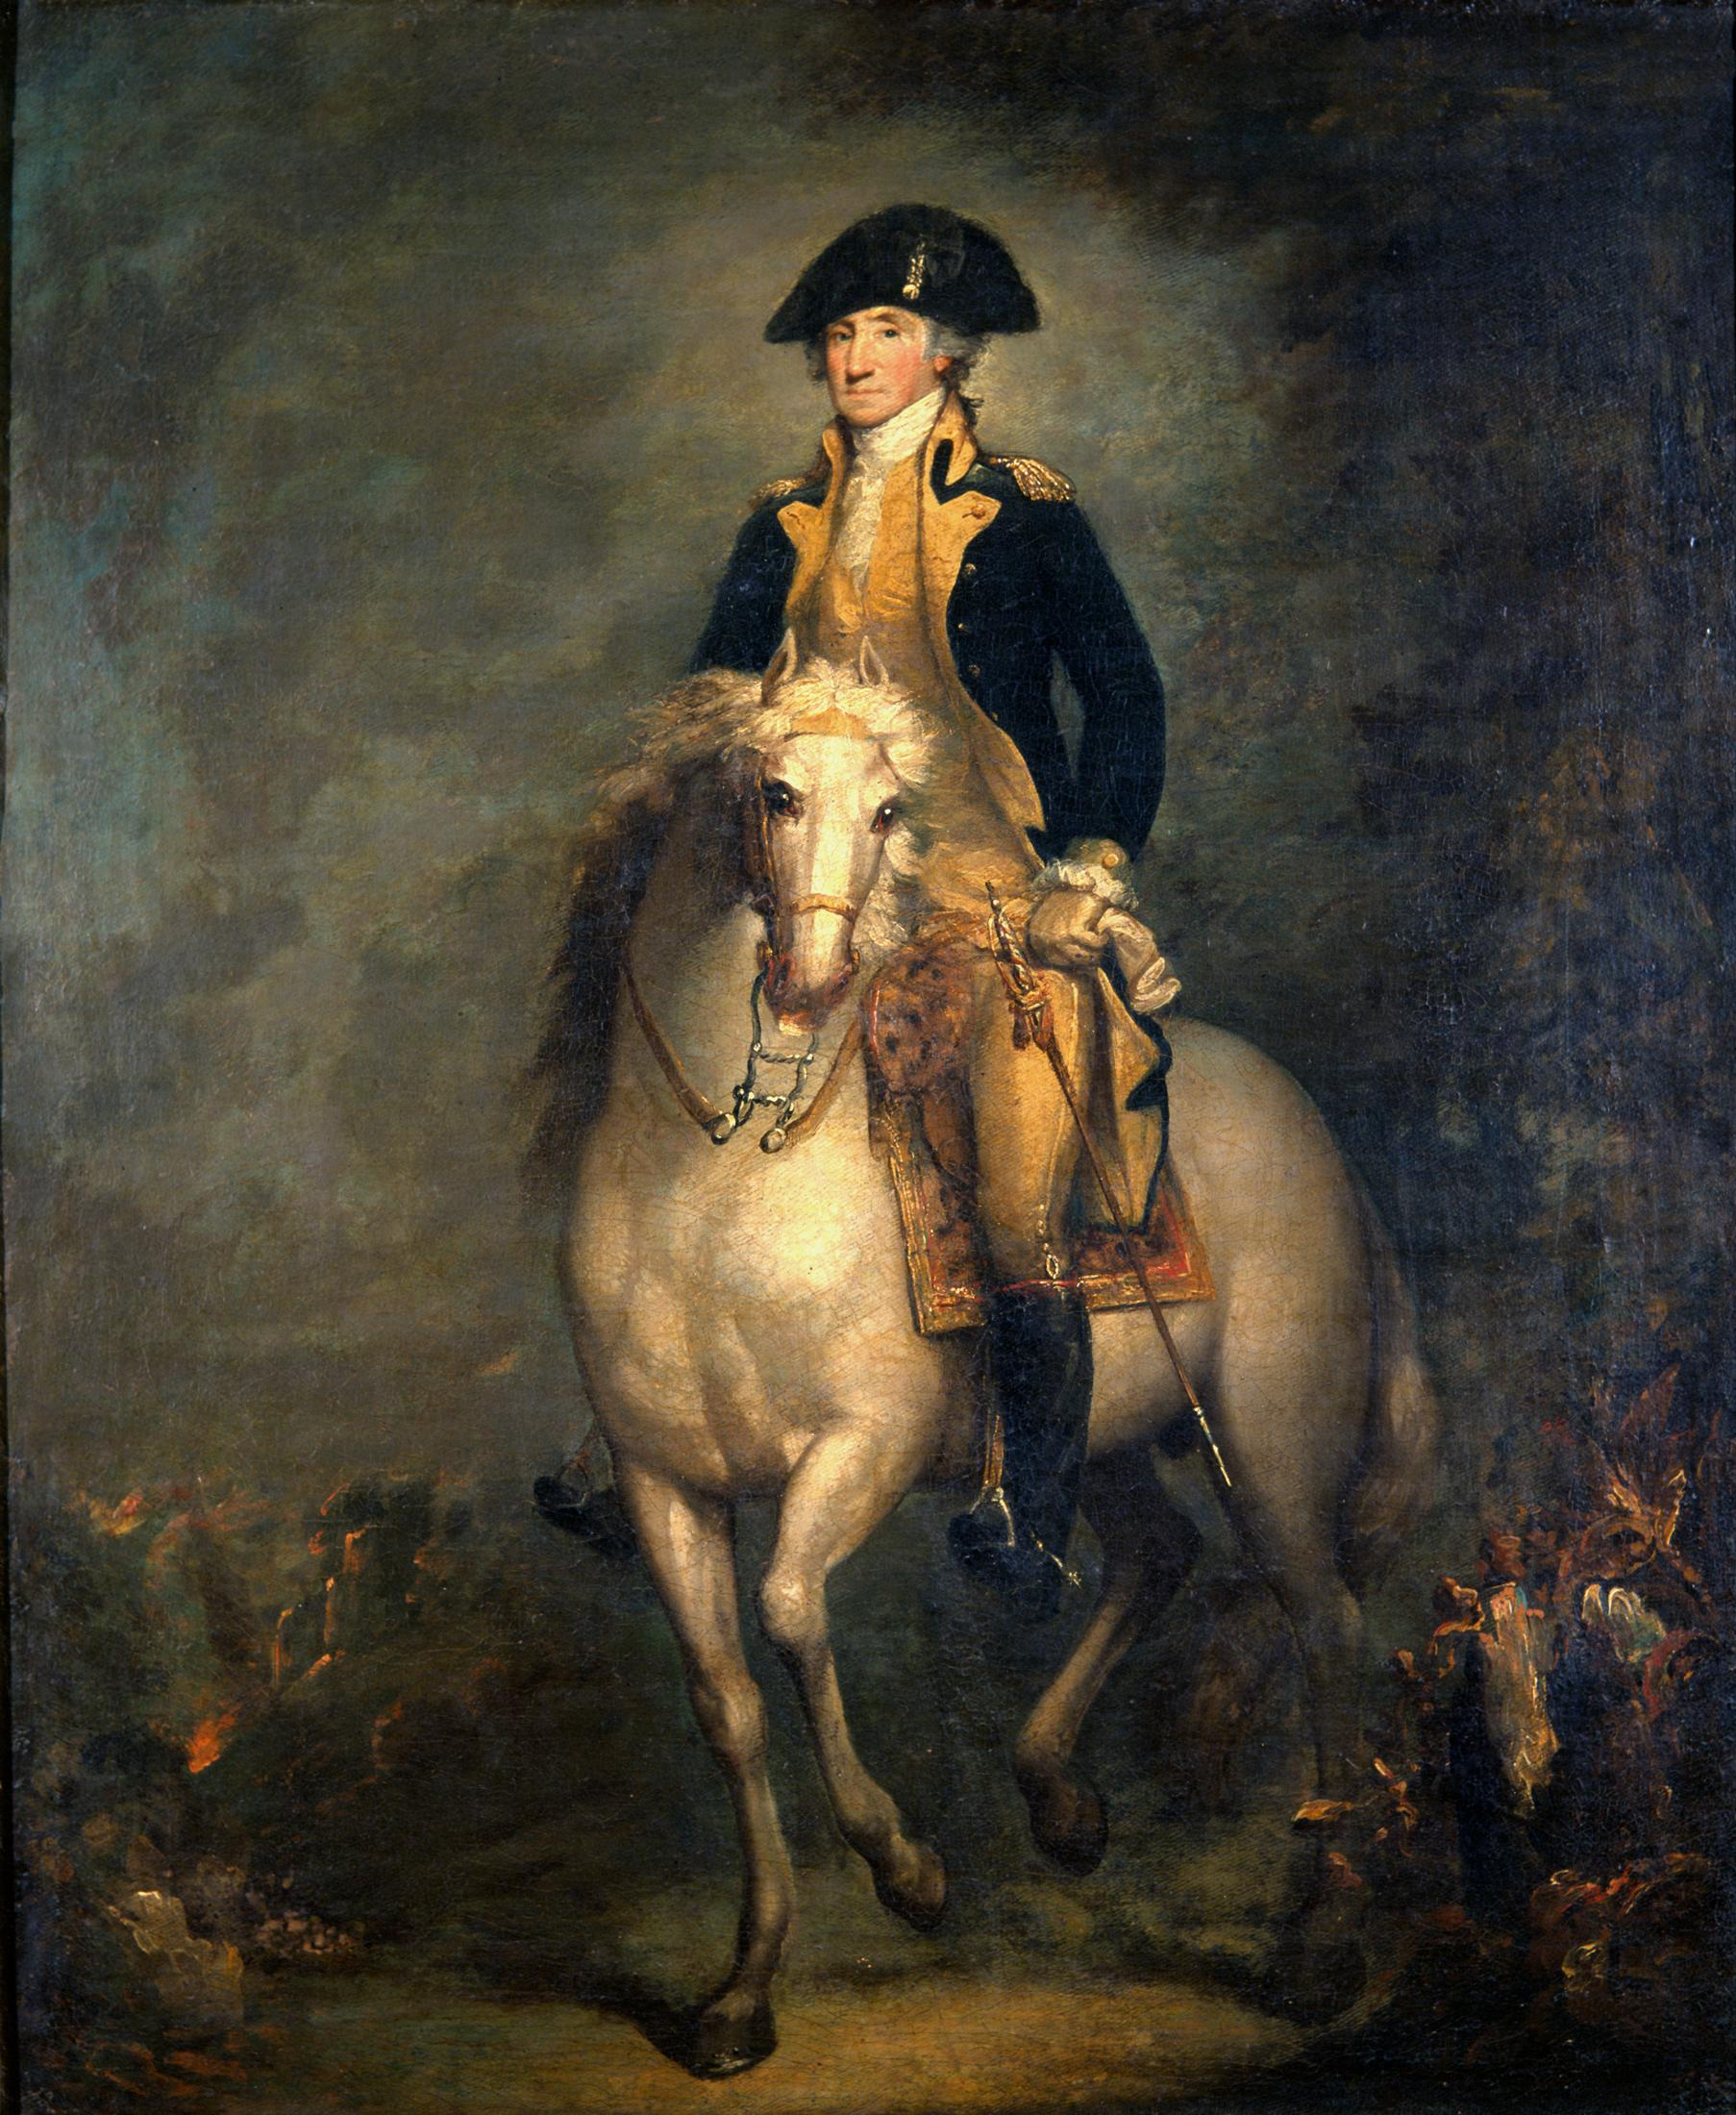 During the American Revolution, Washington was gifted two horses, Nelson and Blueskin (sometimes written as Blewskin), who returned with Washington to Mount Vernon after the war.